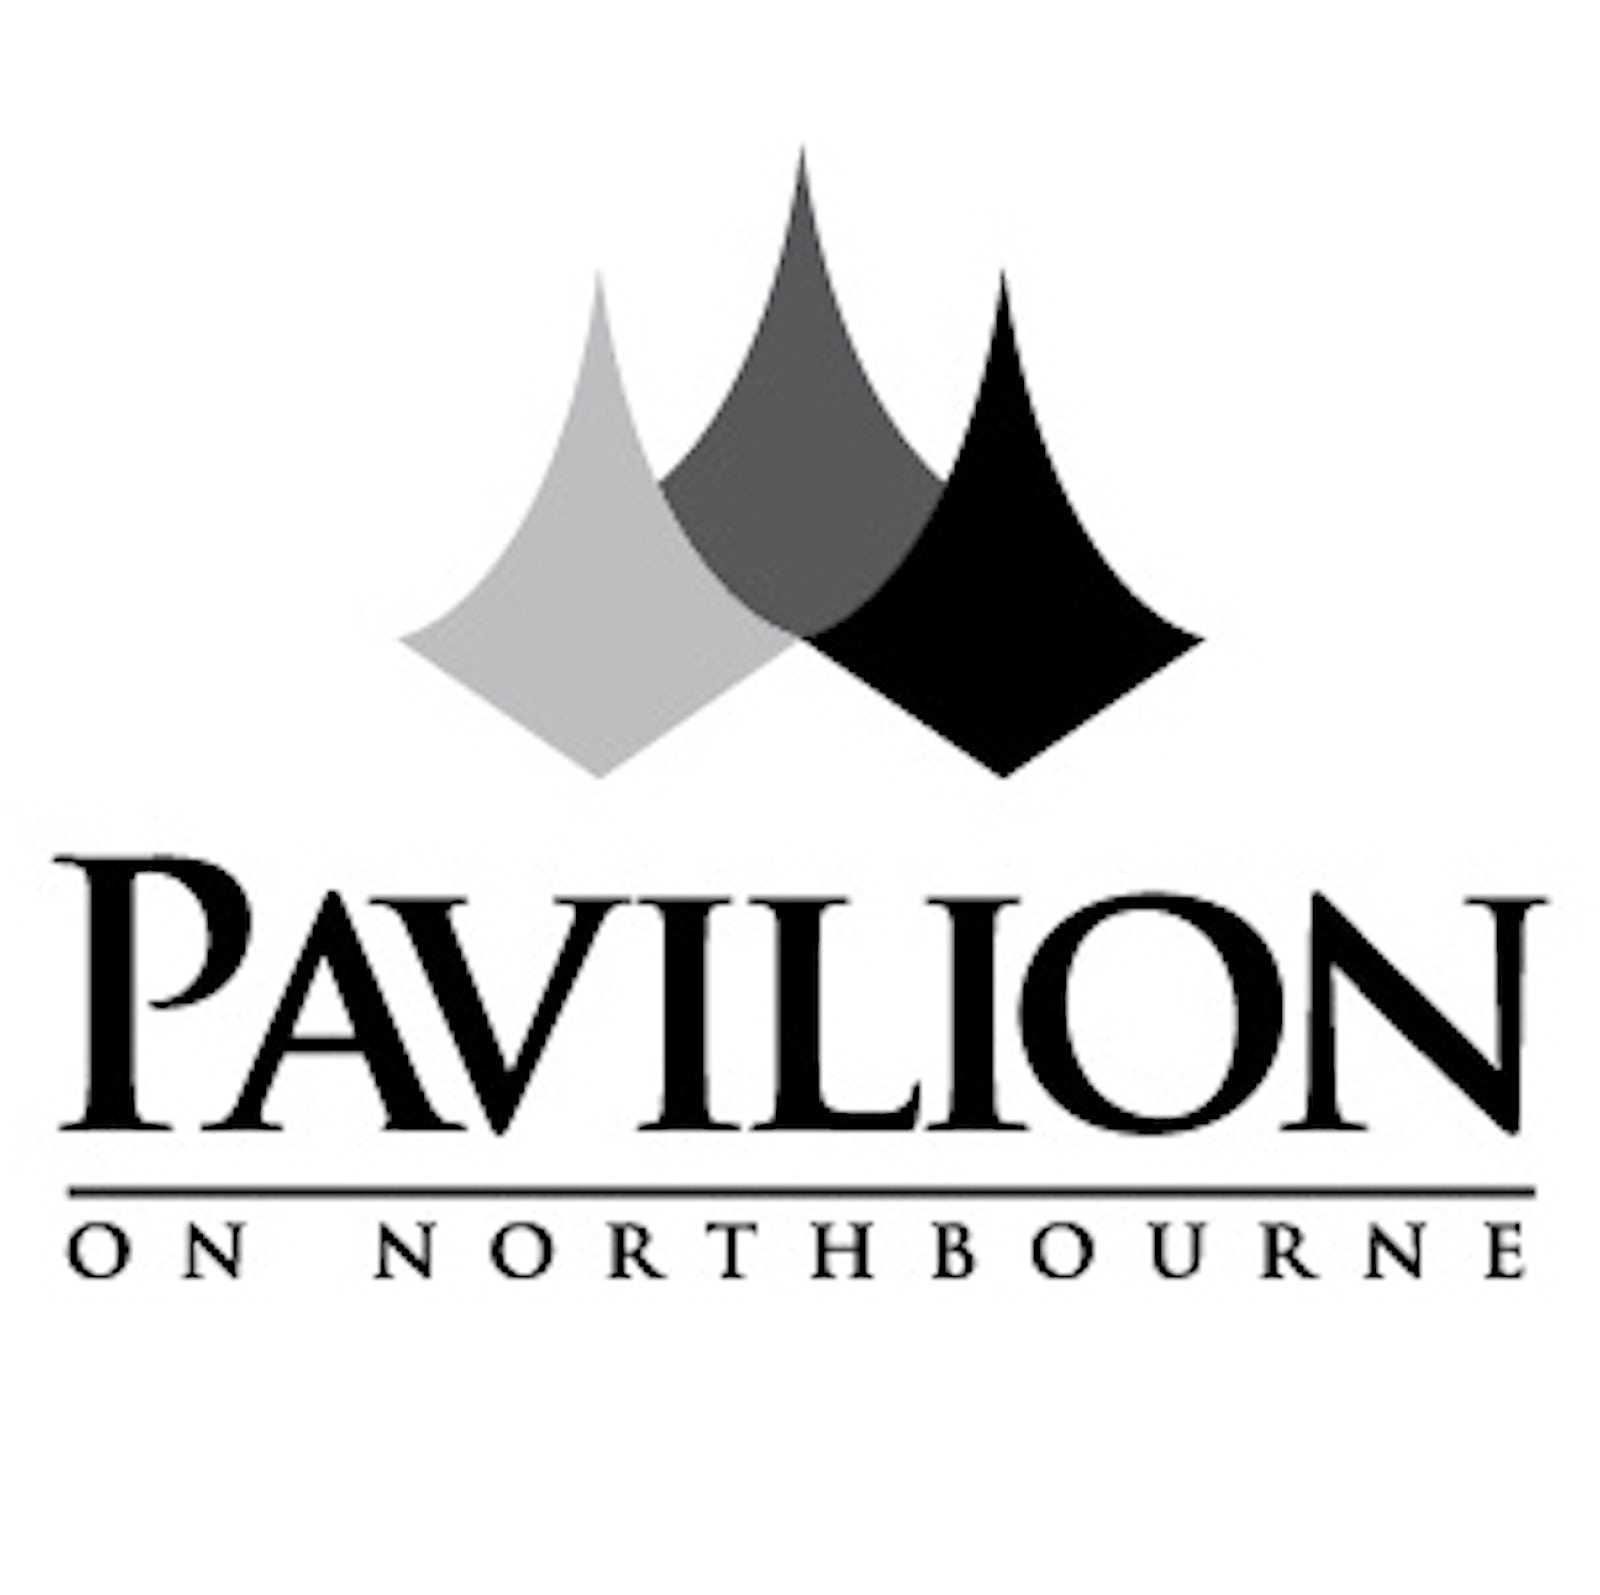 Picture of the Pavilion on Northbourne logo